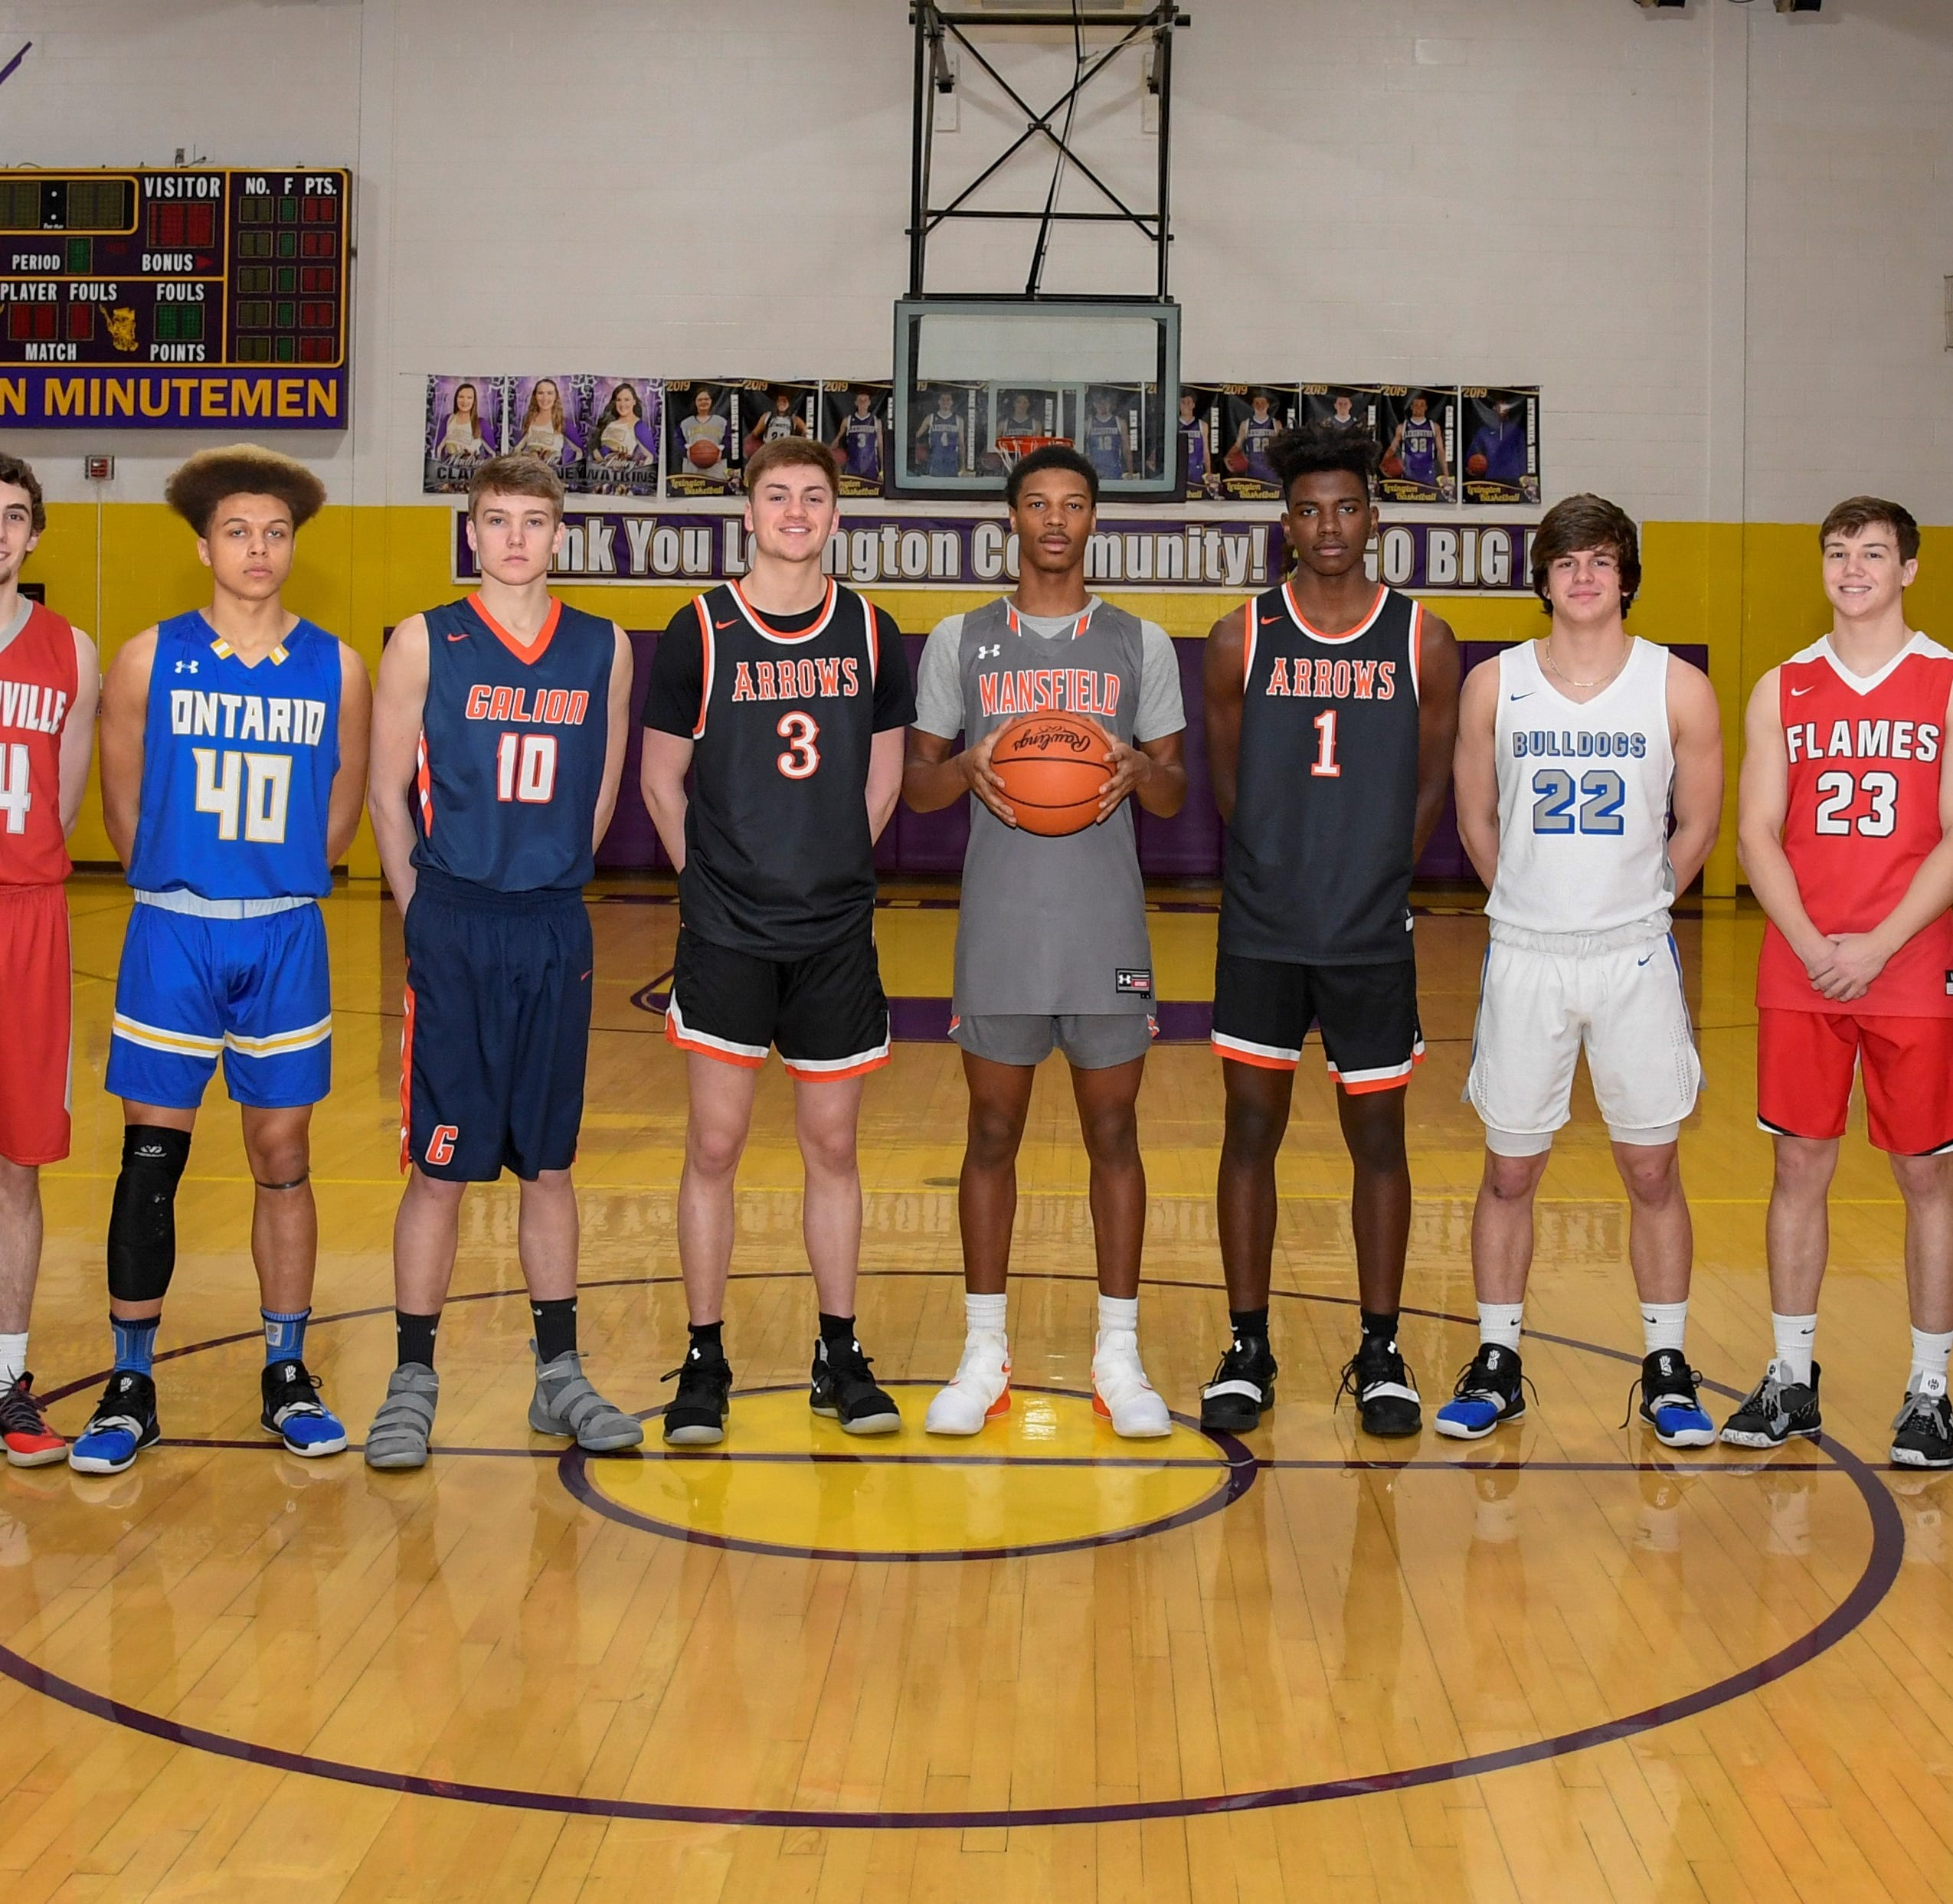 South all-stars: Can they steal North's 'homecourt' edge?